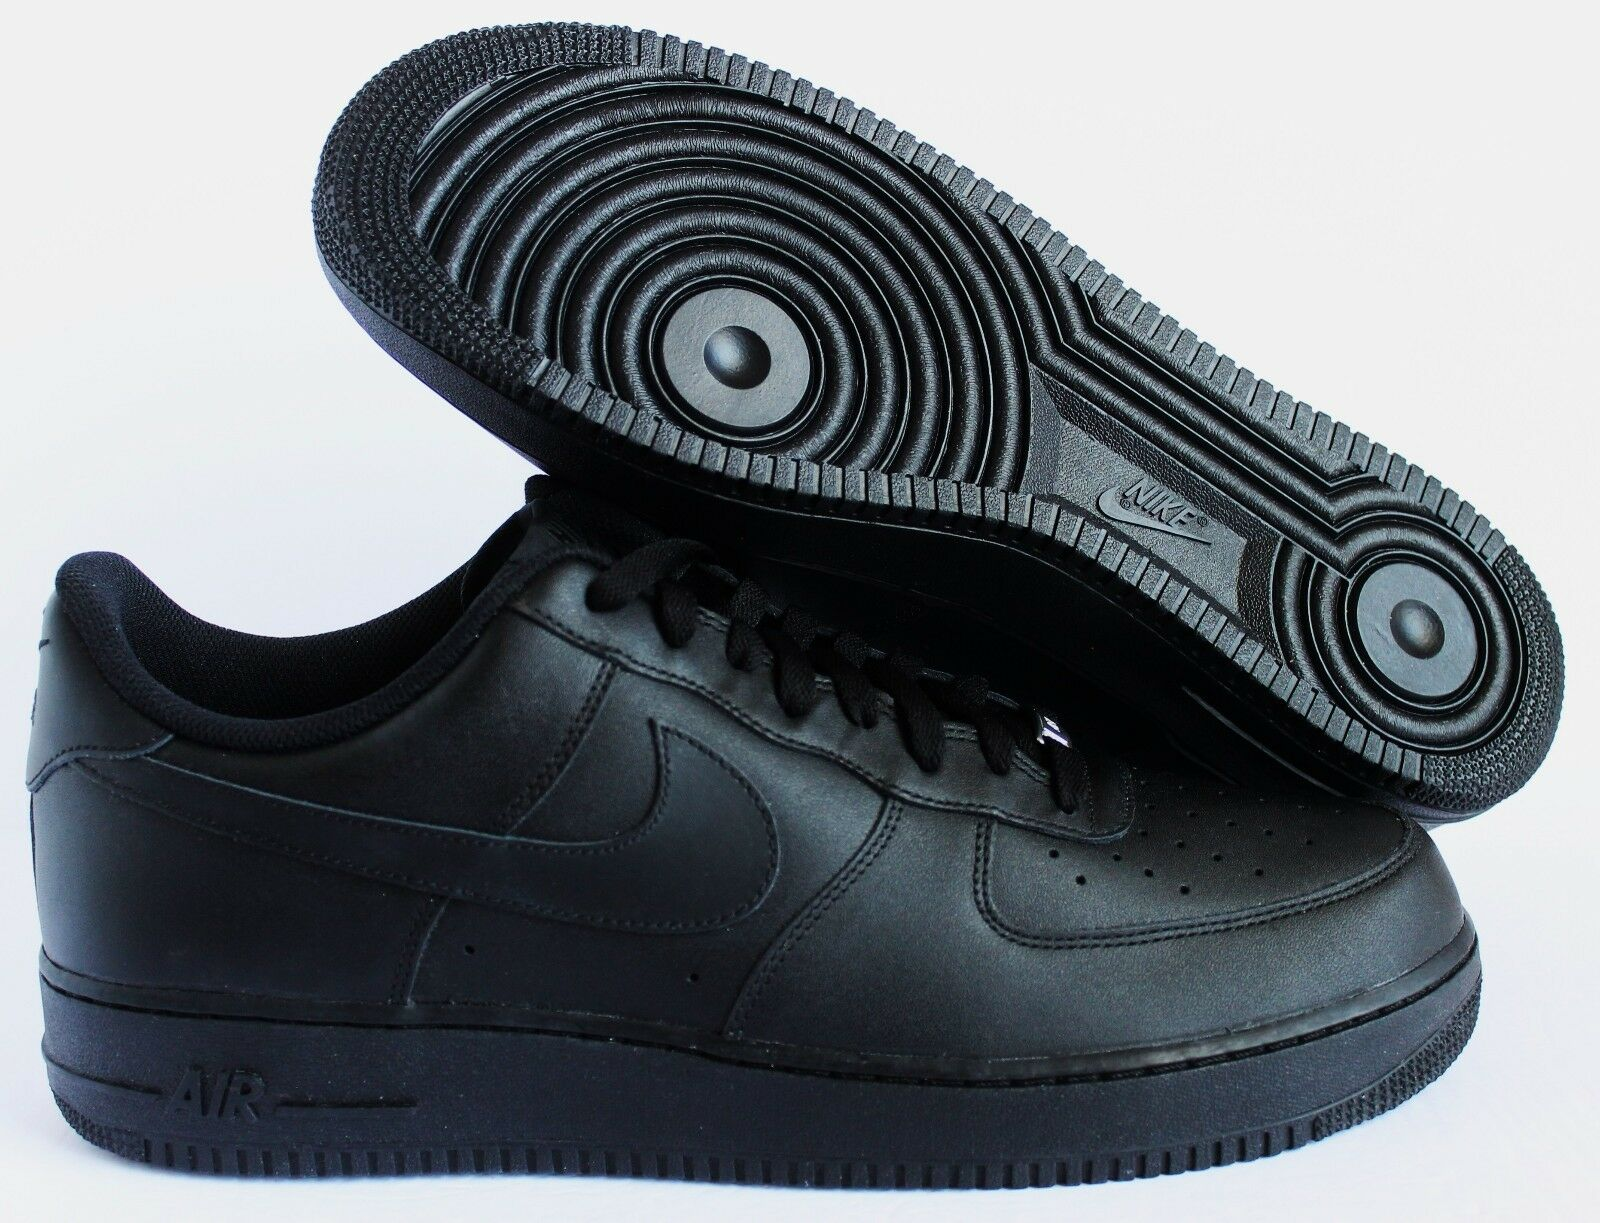 Nike air force 1 07 nero sz / nero sz nero 14 [315122-001] 7deca5